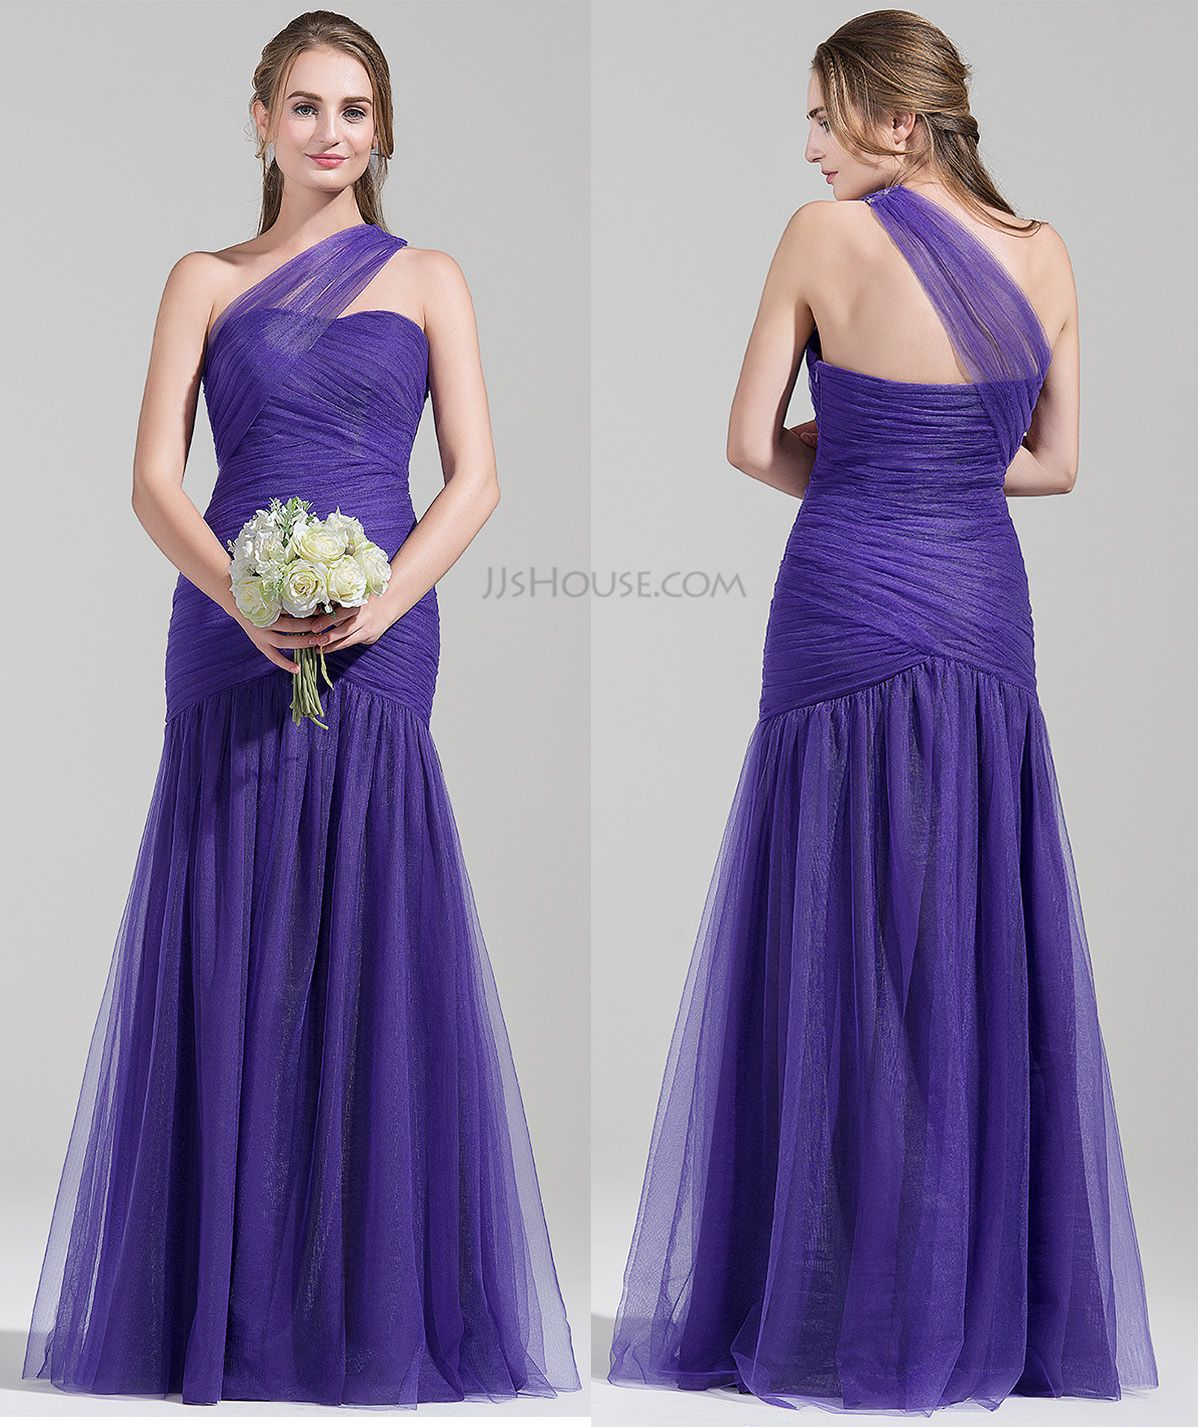 One shoulder regency bridesmaid dress Do you like the style